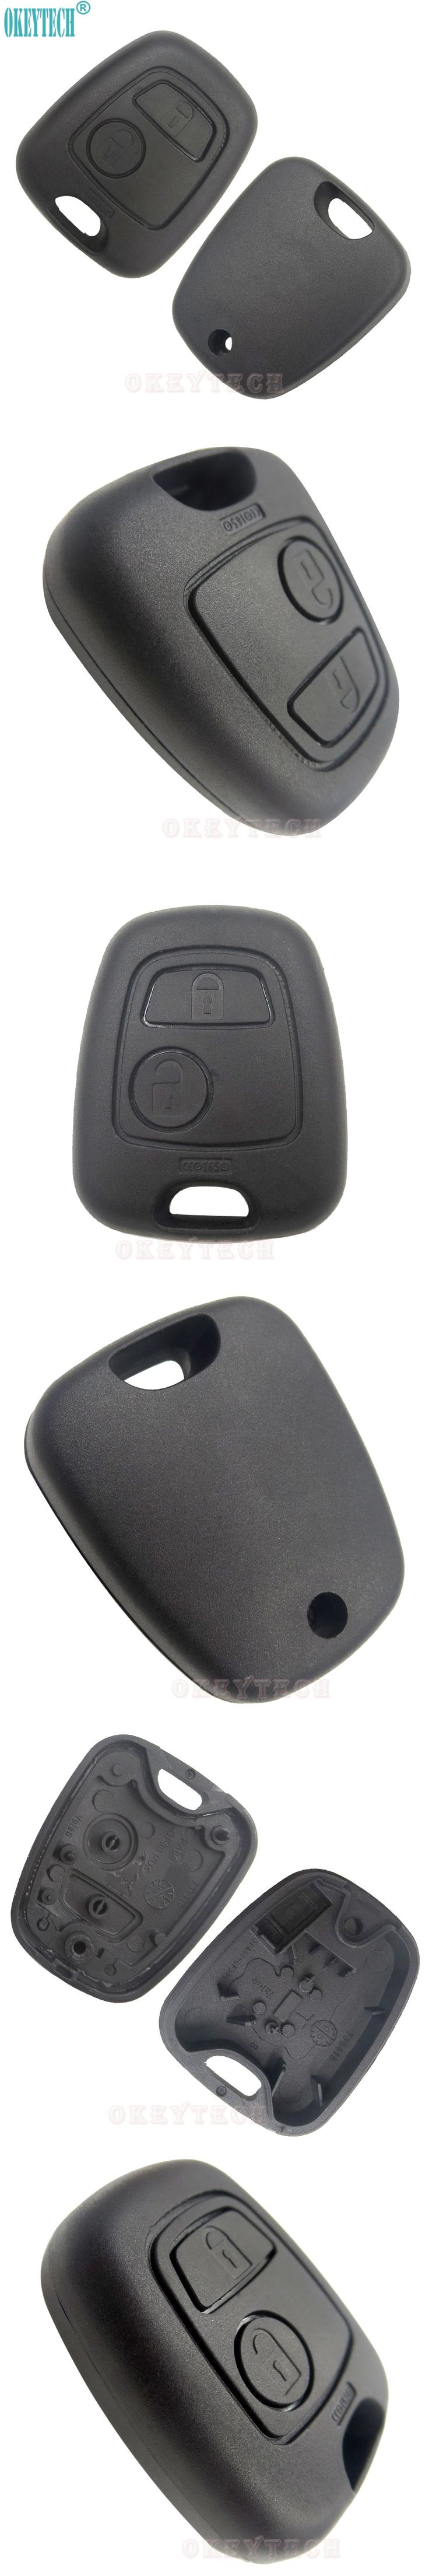 OkeyTech Car Styling Remote Key Car Key Fob Case Good Quality Replacement Shell Cover For Peugeot 307 107 207 407 without Blade